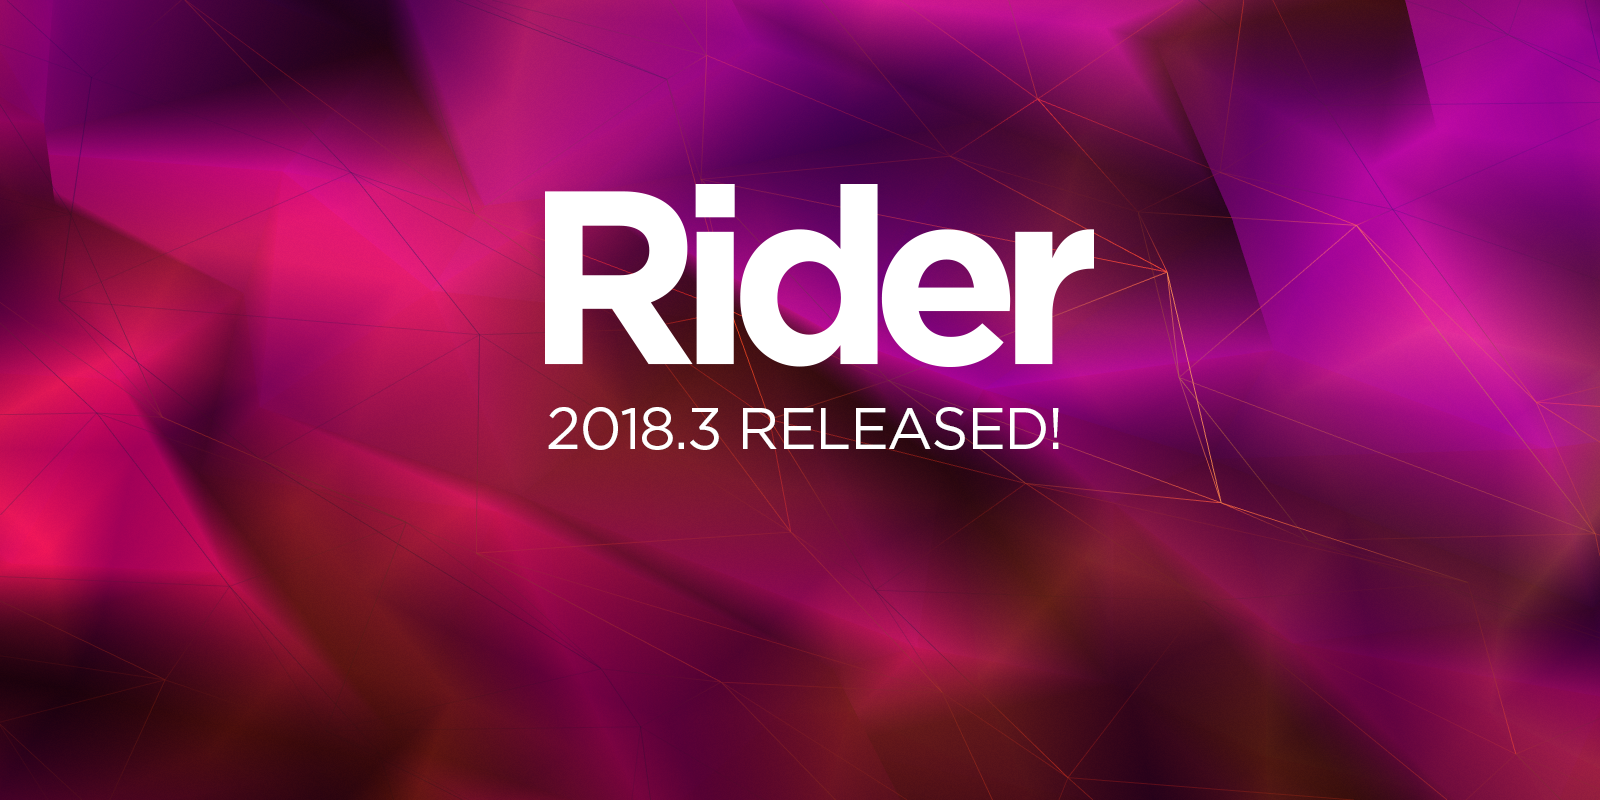 Rider 2018.3 is released